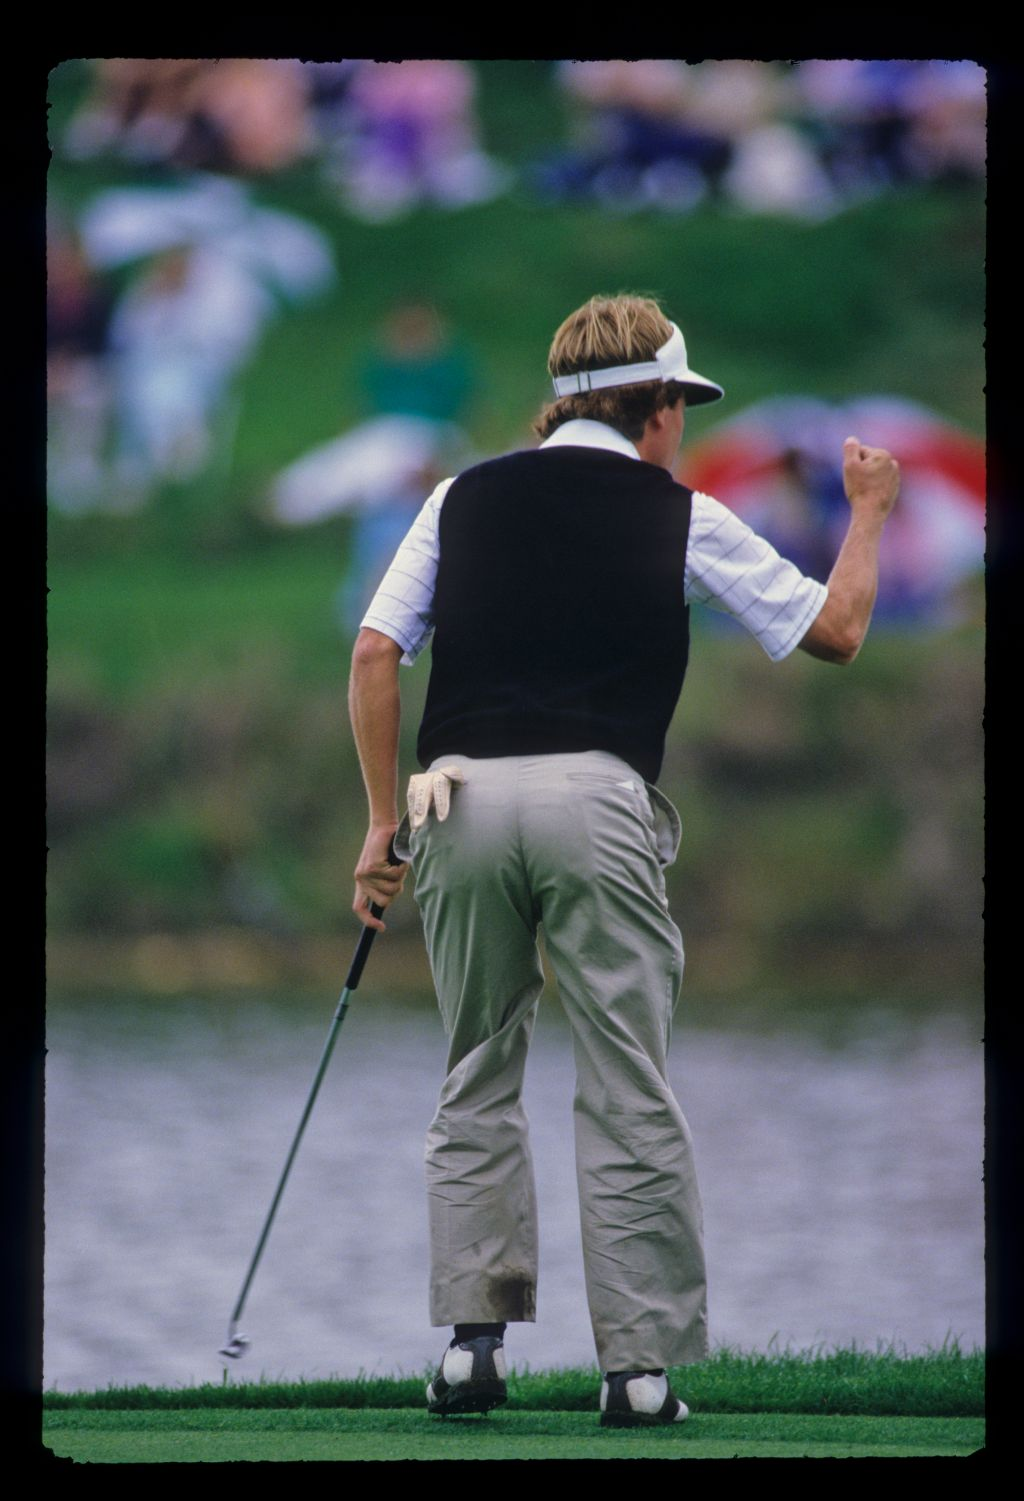 Jeff Sluman with a clenched fist salute after a successful putt during the 1987 TPC